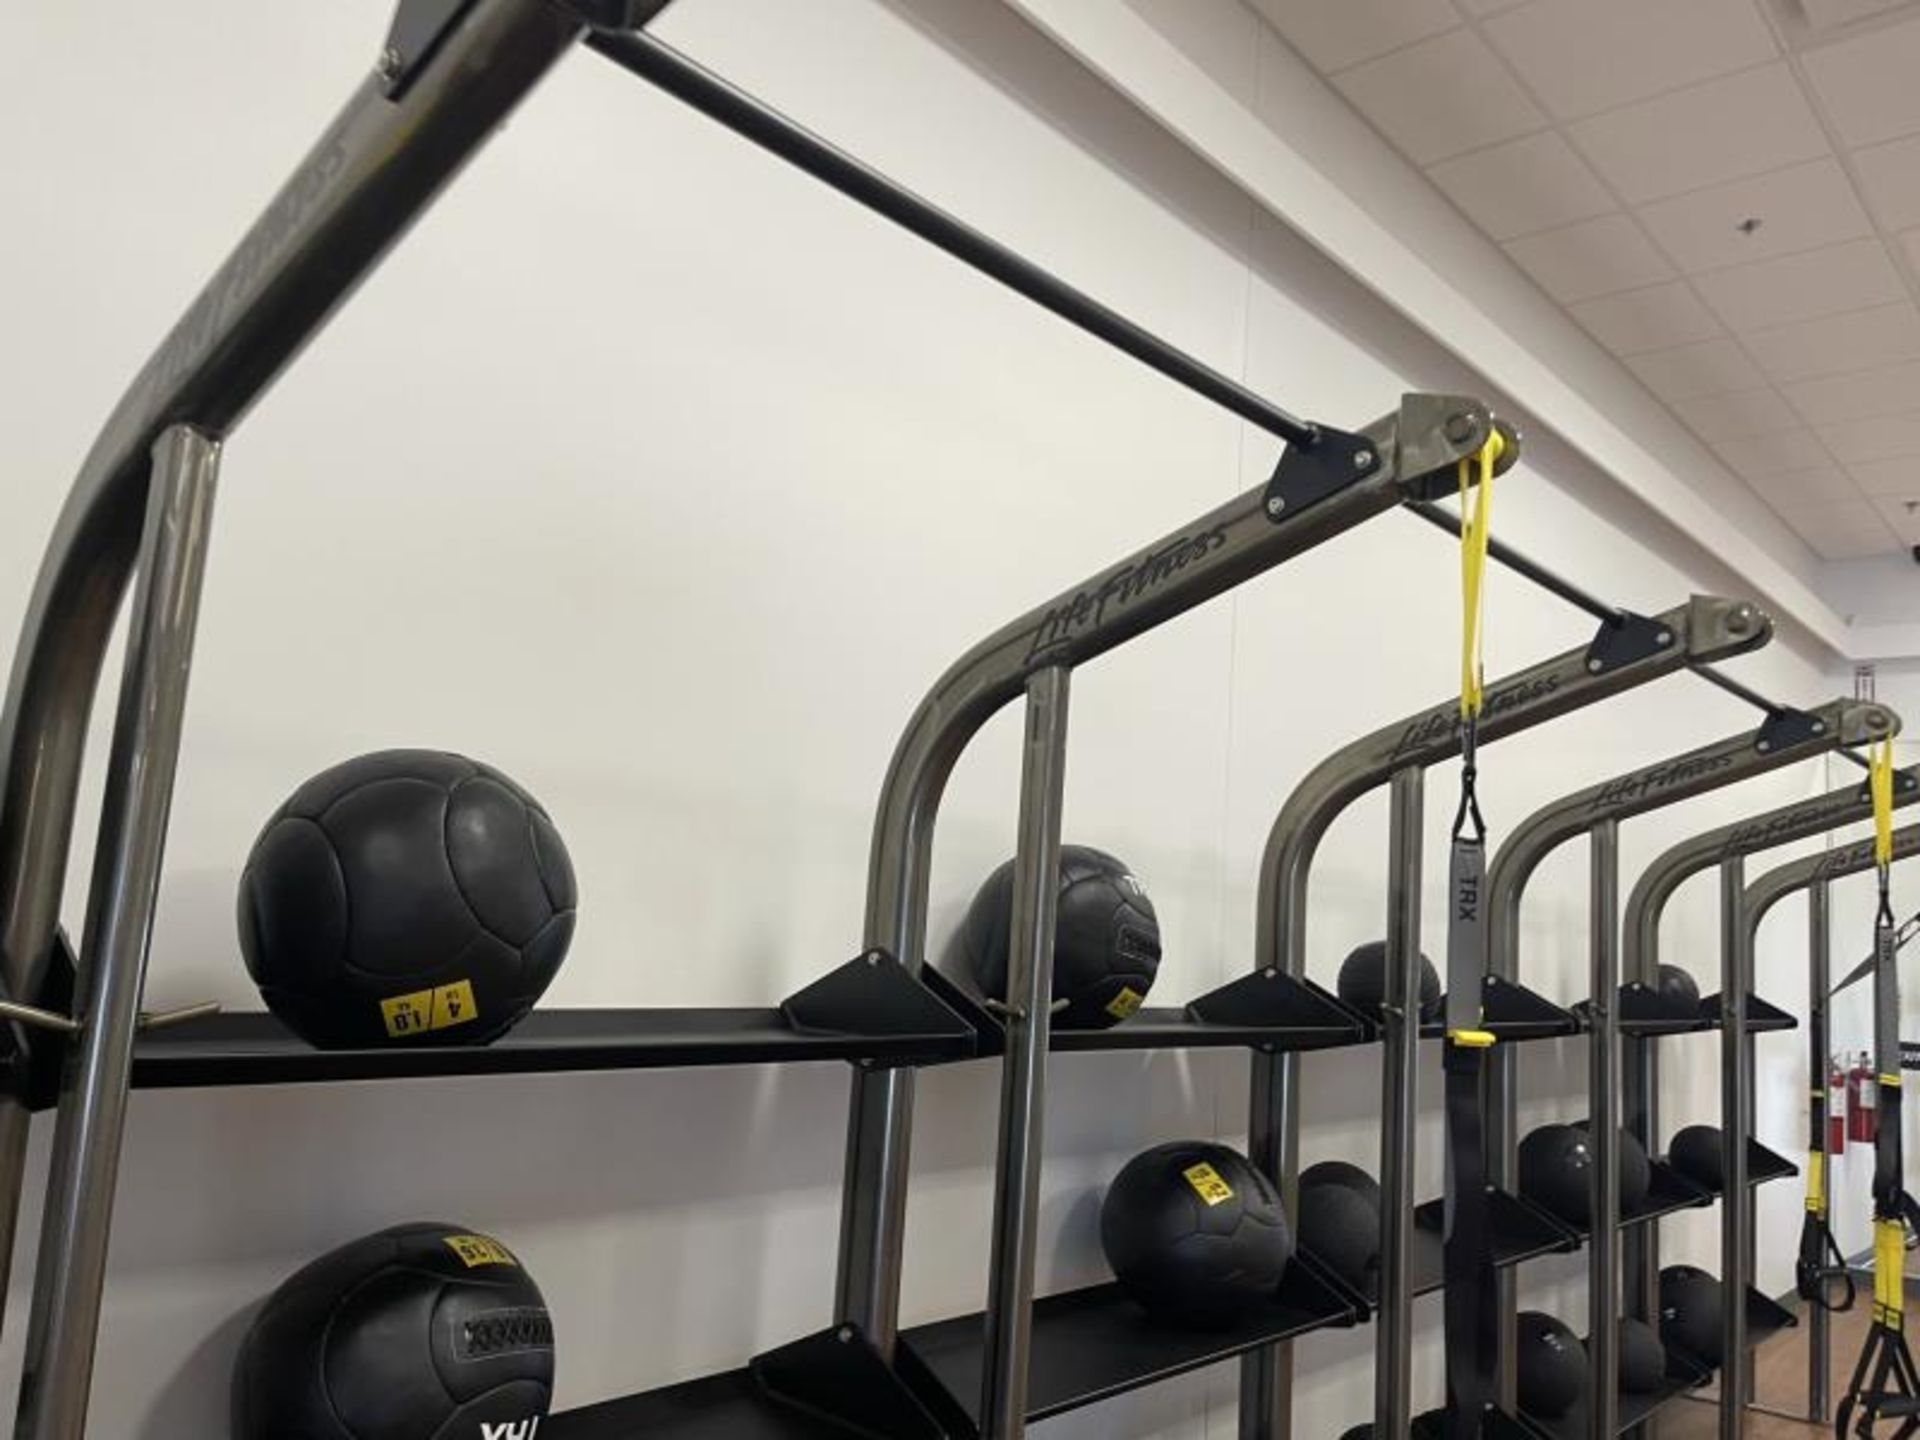 Life Fitness SYNRGY Wall Rack Training System, TRX Training System Straps, Rope, Balls - Image 3 of 8